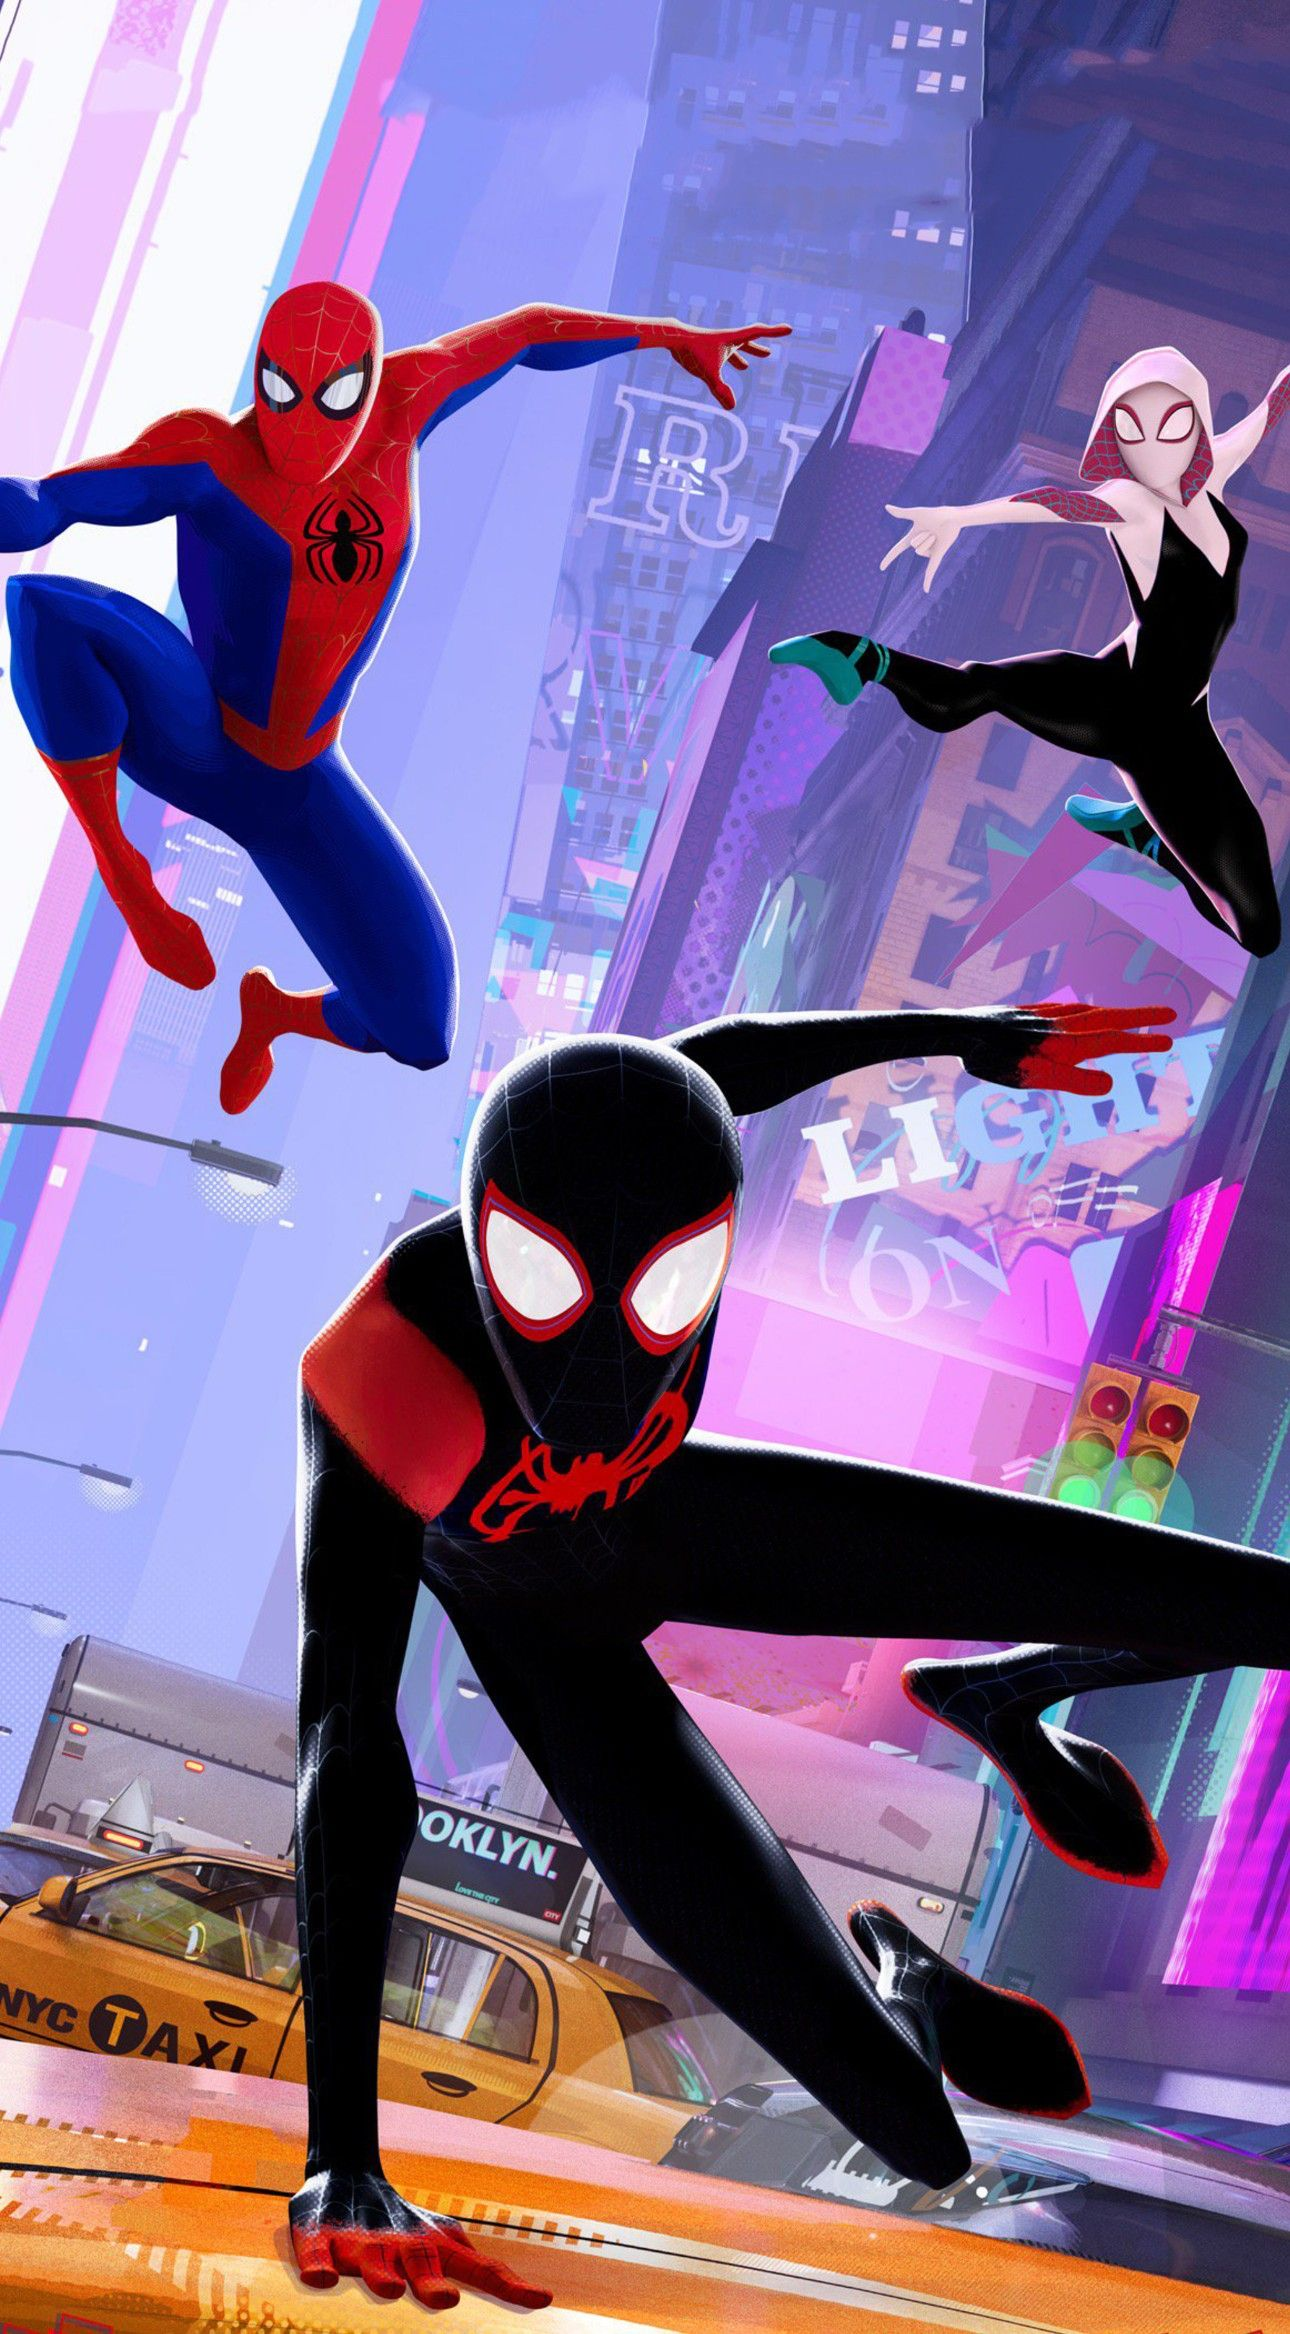 Miles Morales - Ultimate Spider-Man, Into the Spider-Verse #spider-man